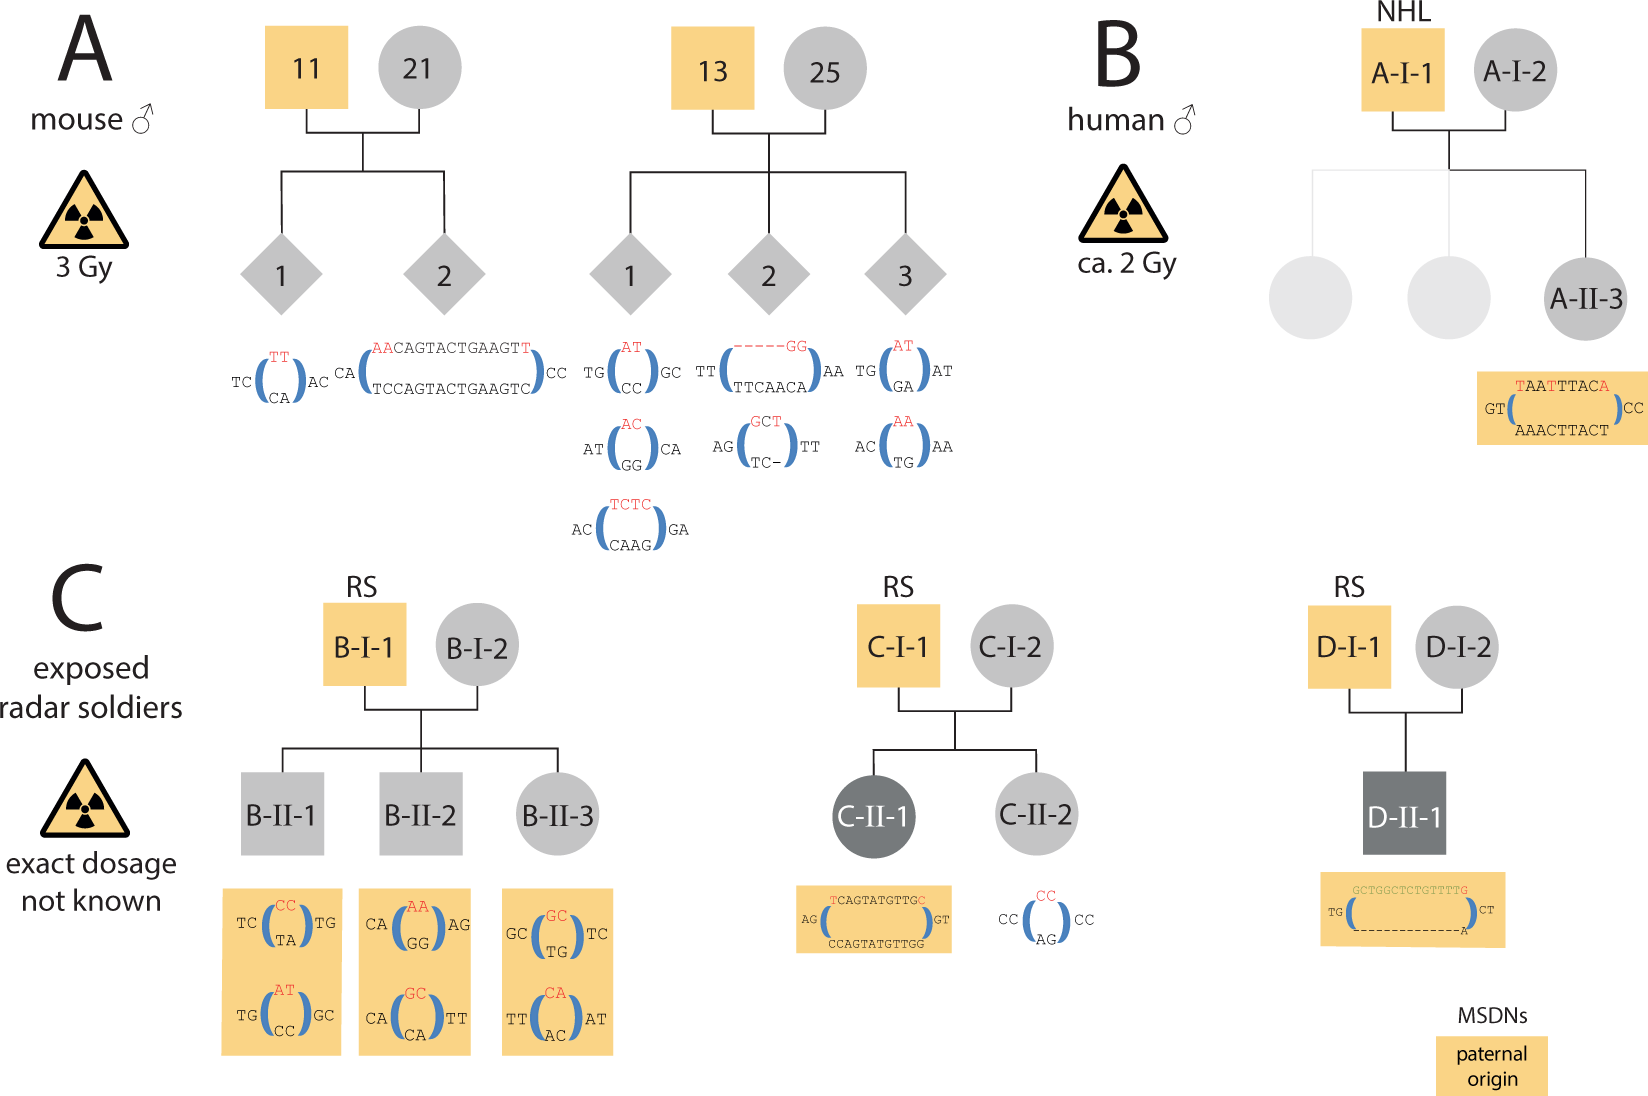 Multisite de novo mutations in human offspring after